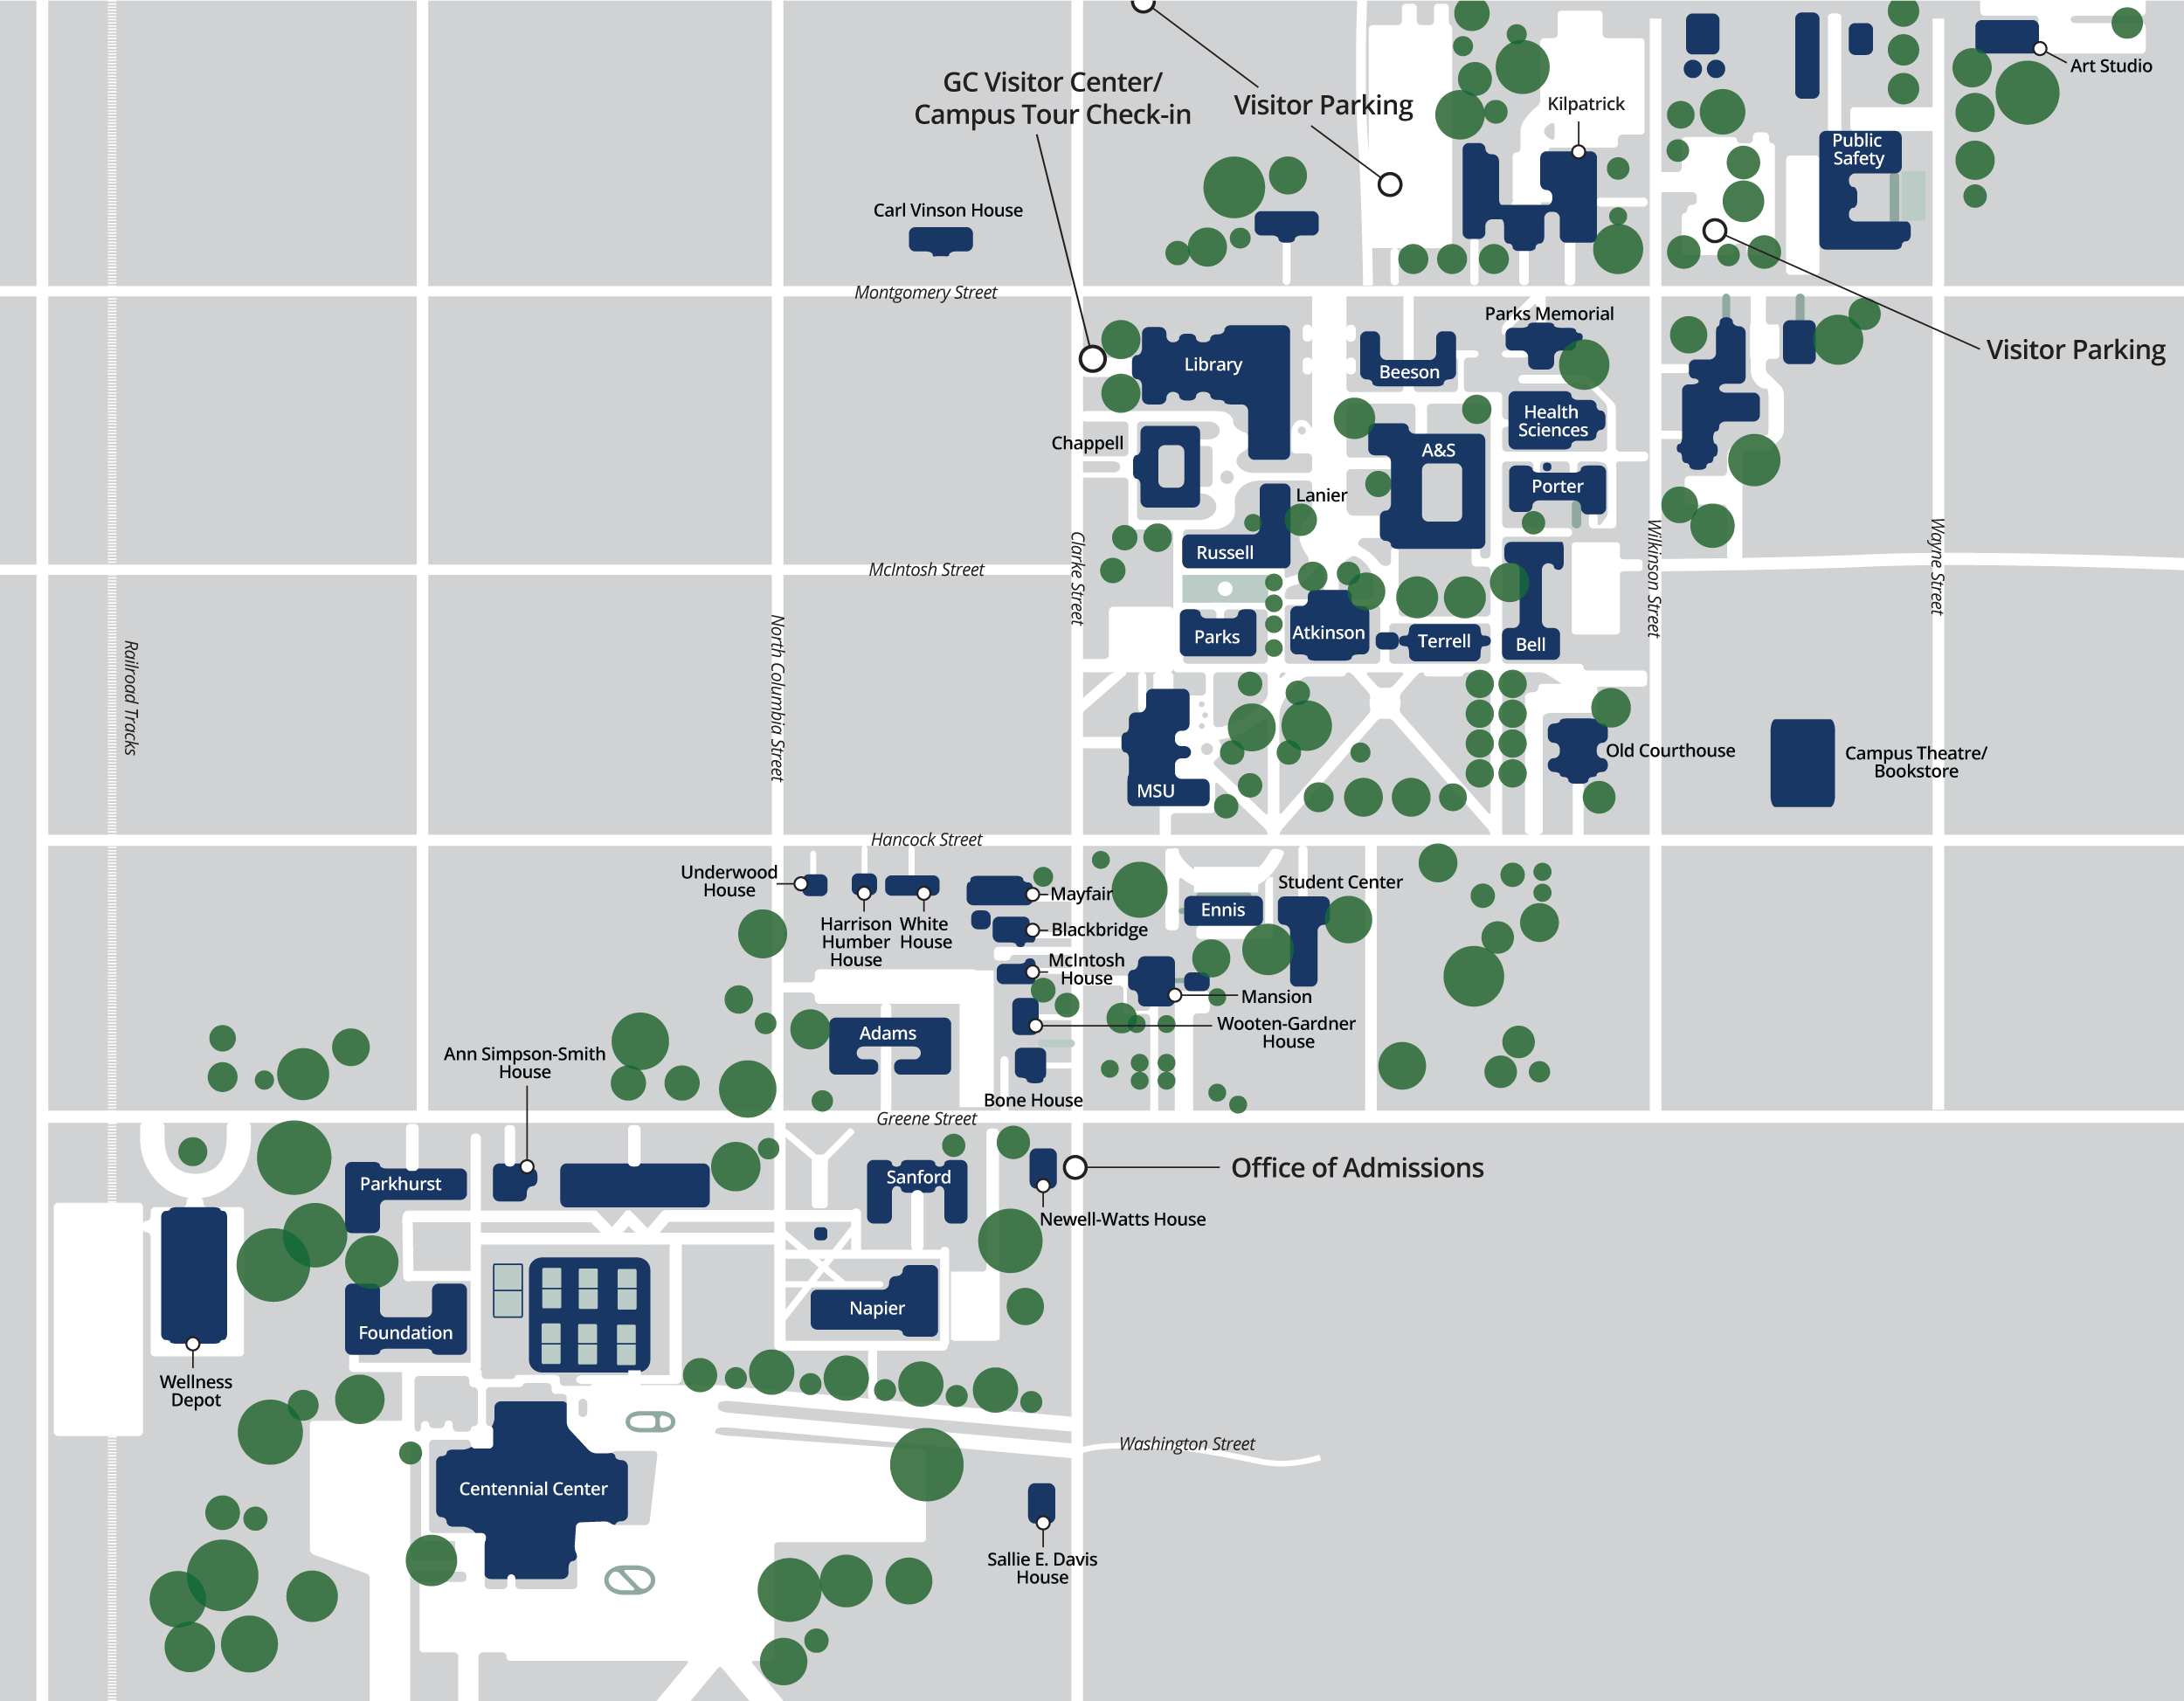 Lost? Here's a map of the Georgia College campus to help you find ...